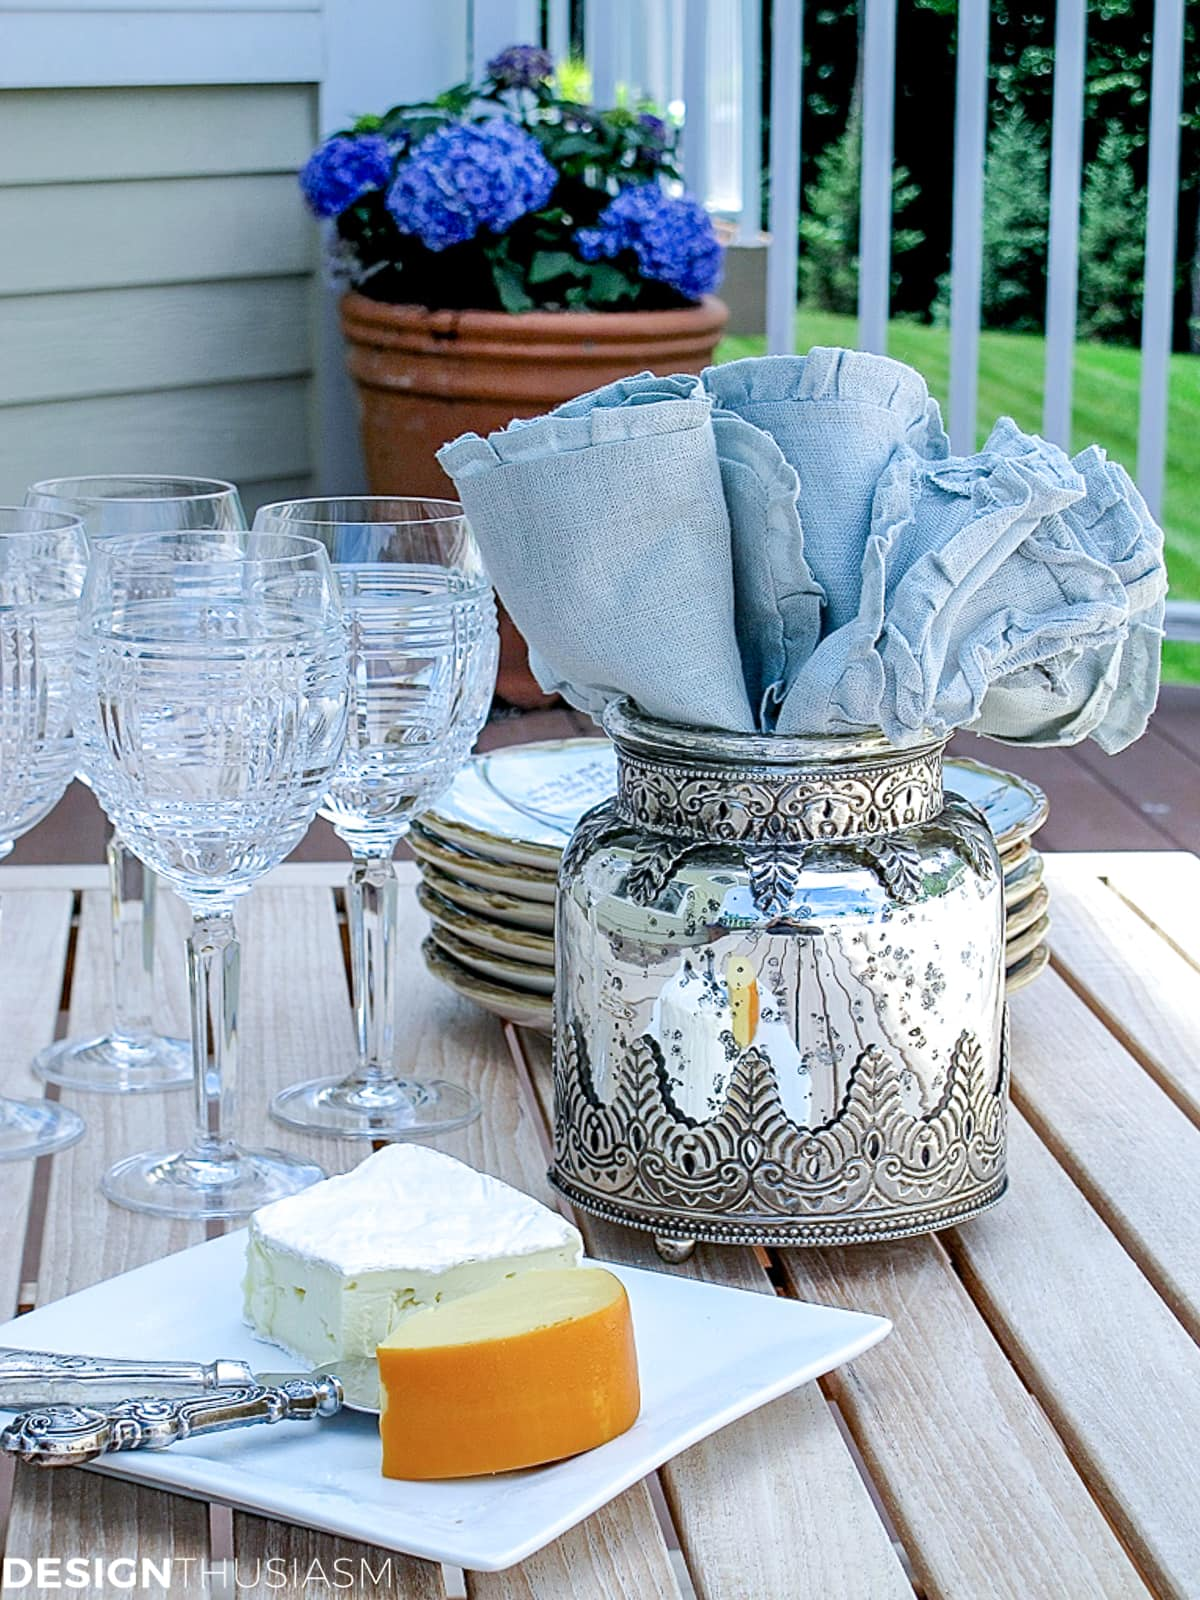 patio decor with blue ruffled napkins